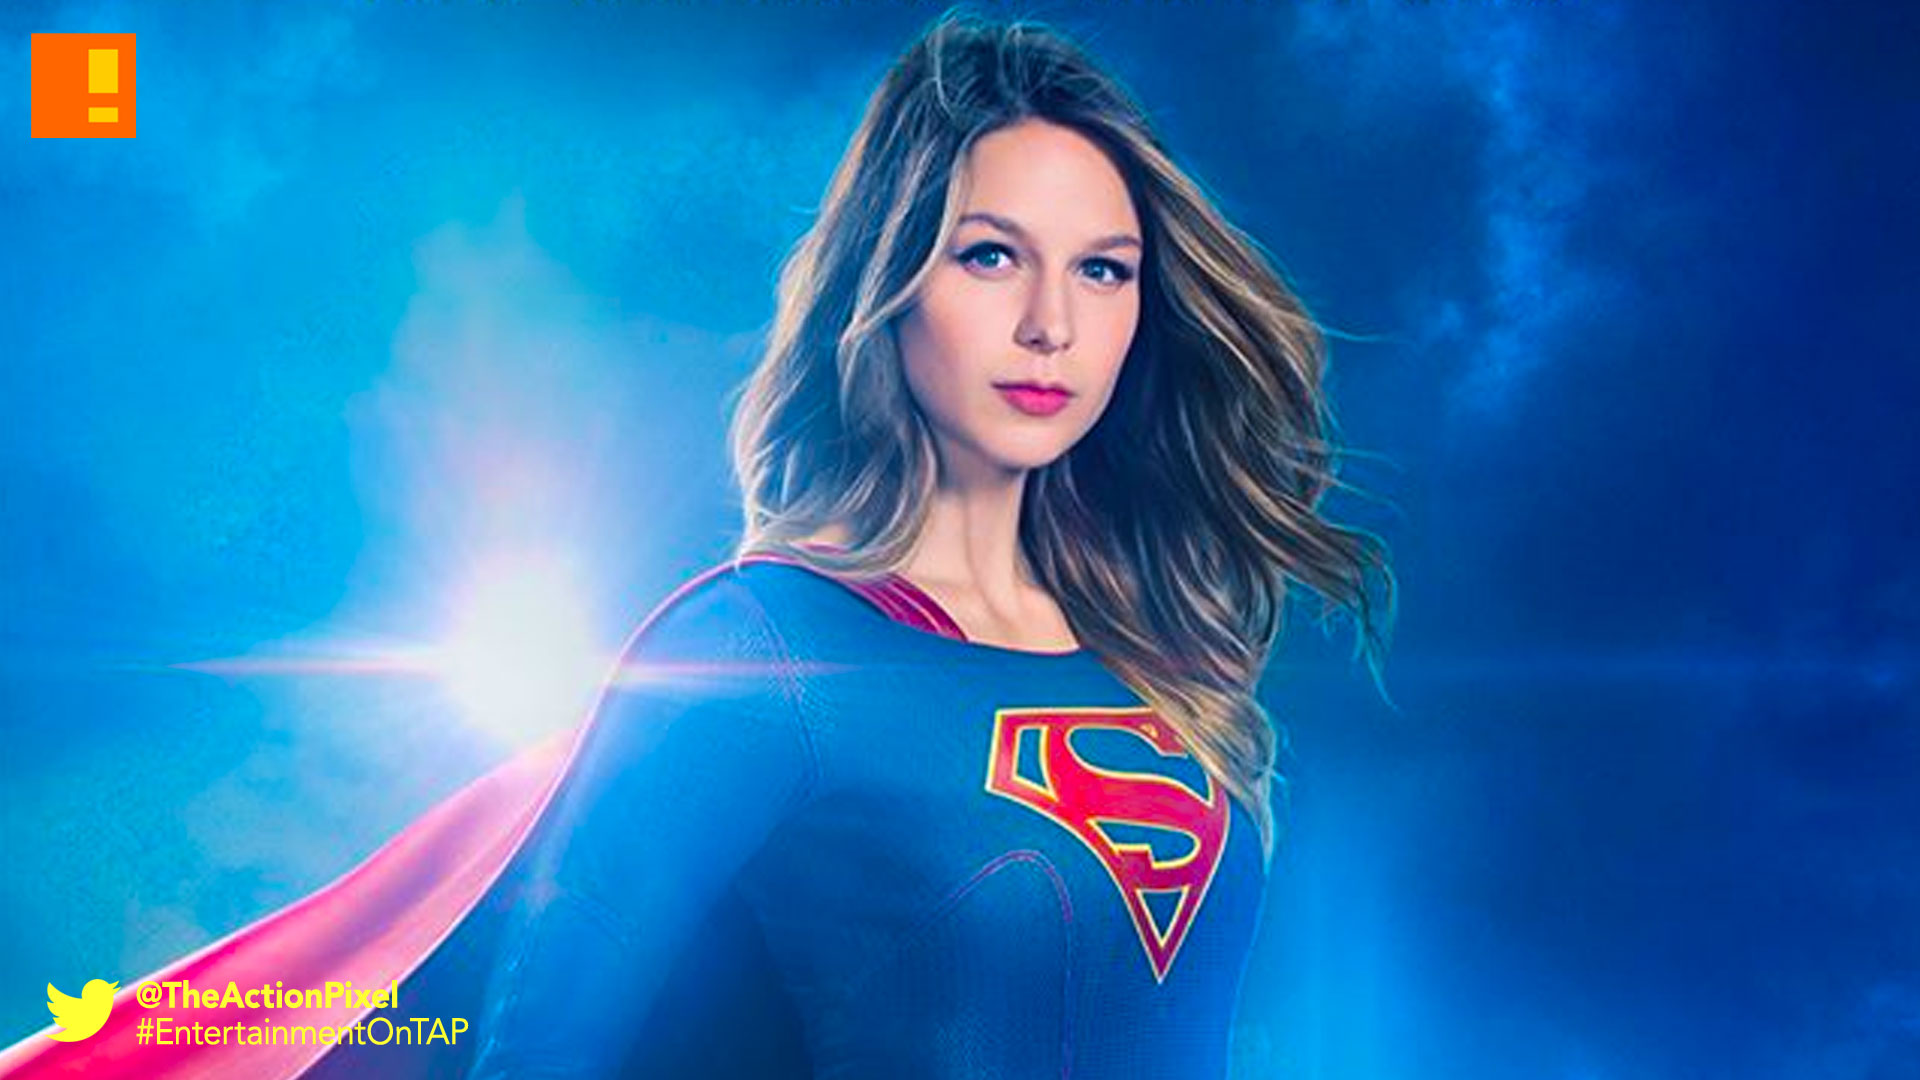 poster, supergirl, cbs,CW, melissa benoist, the action pixel, entertainment on tap,